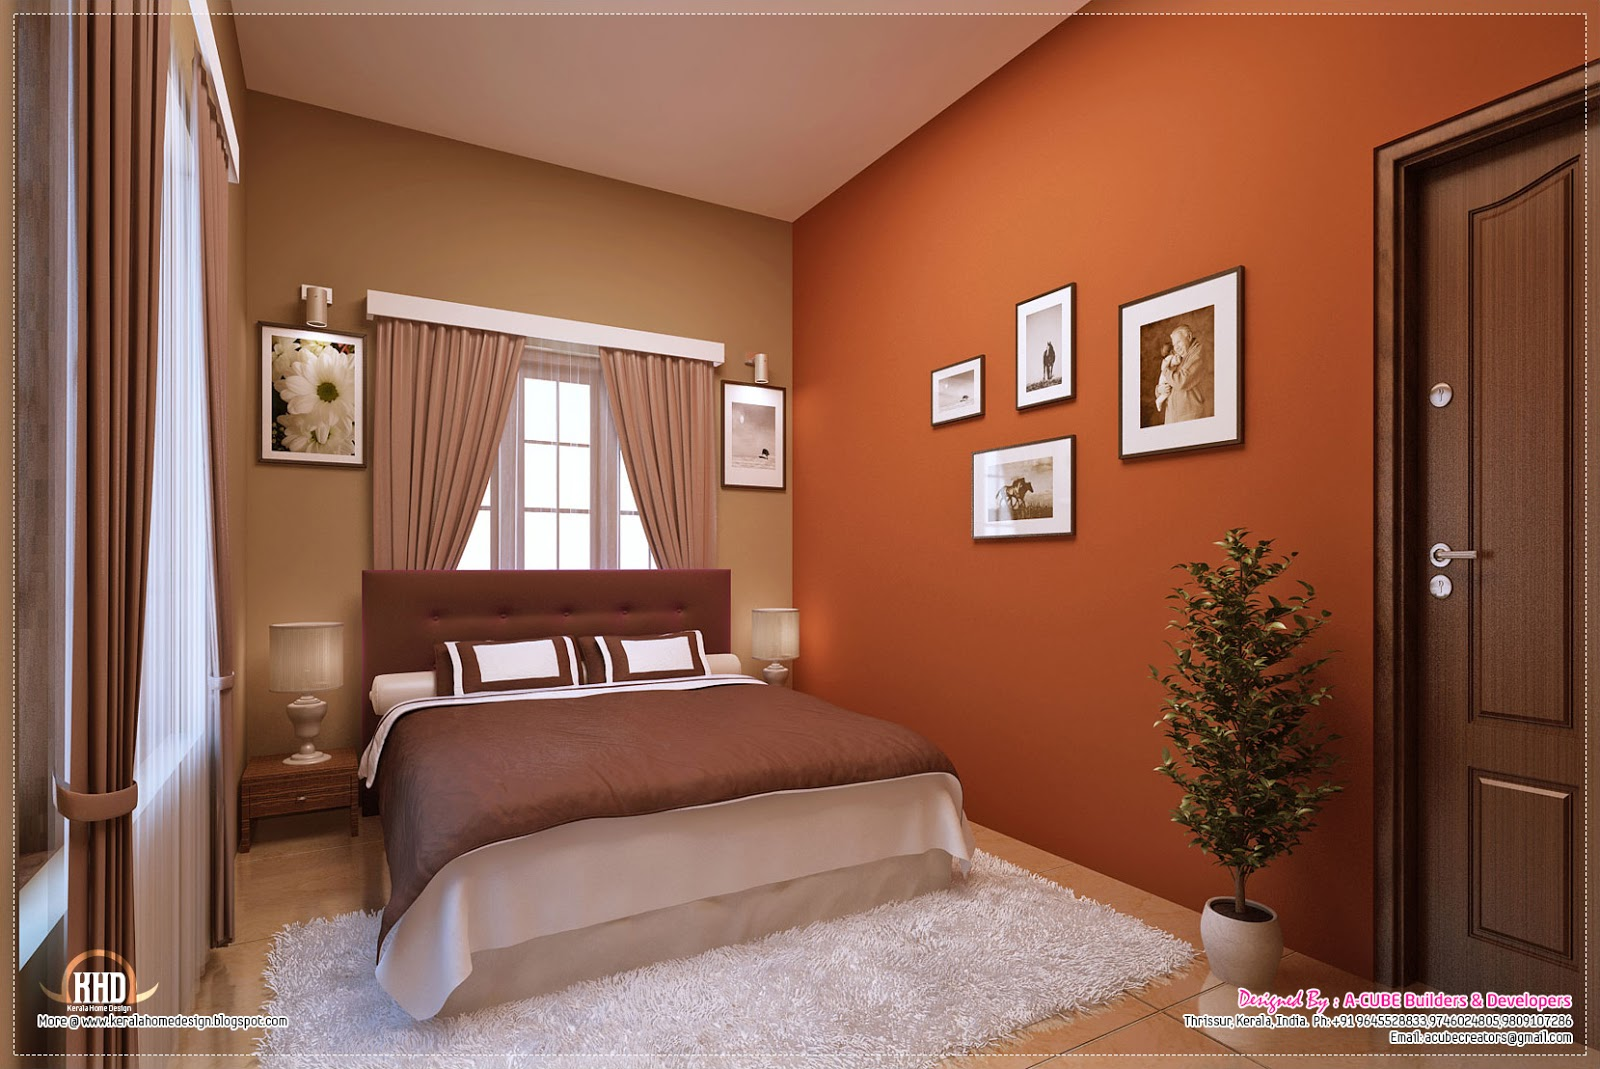 Awesome interior decoration ideas kerala home design and for Master bedroom interior design images